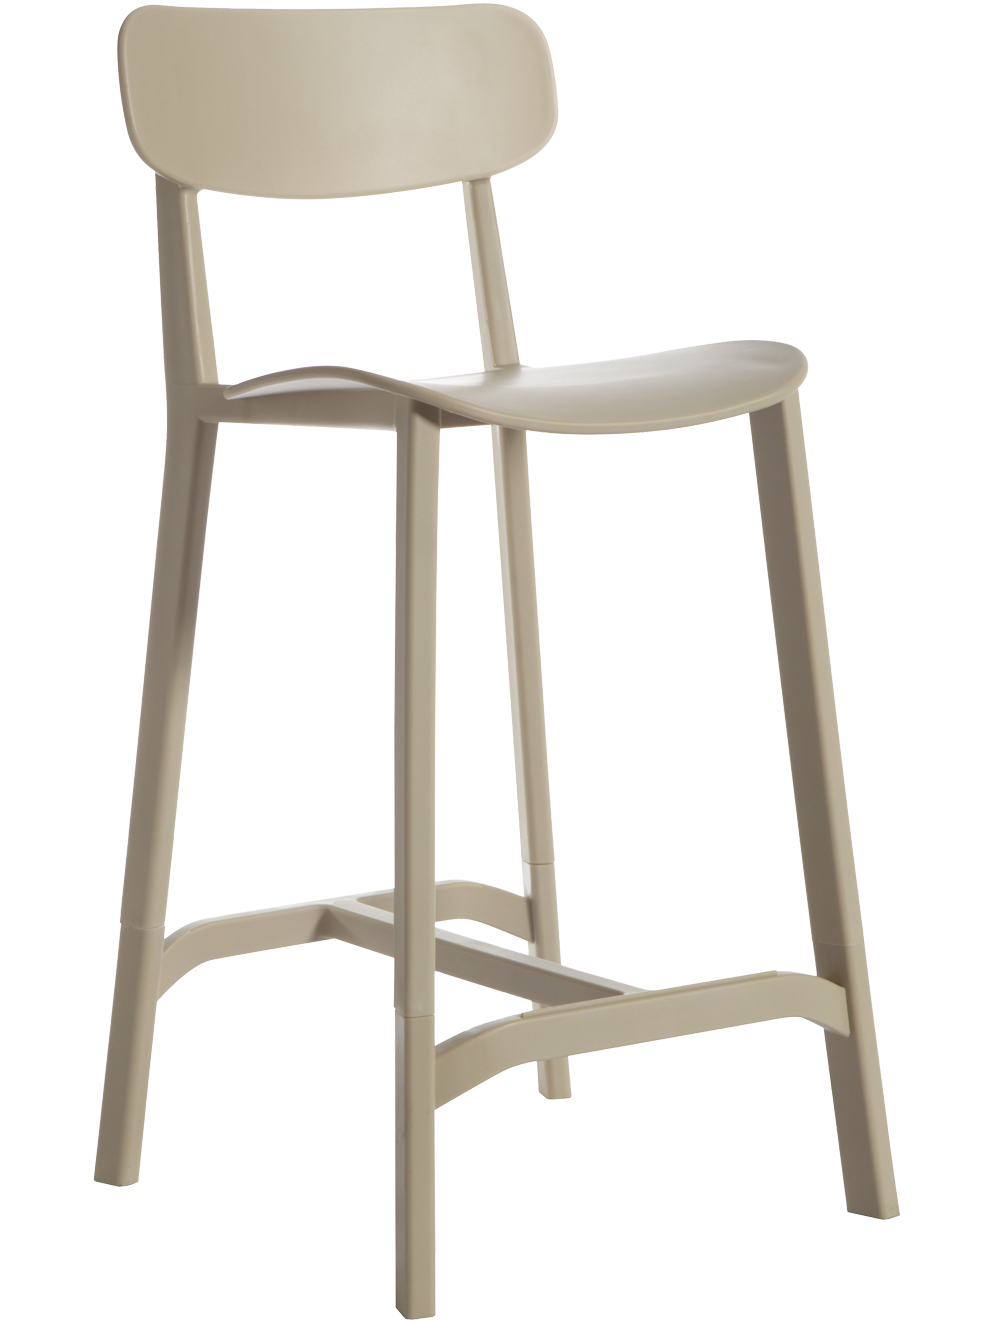 Marilyn Chair H